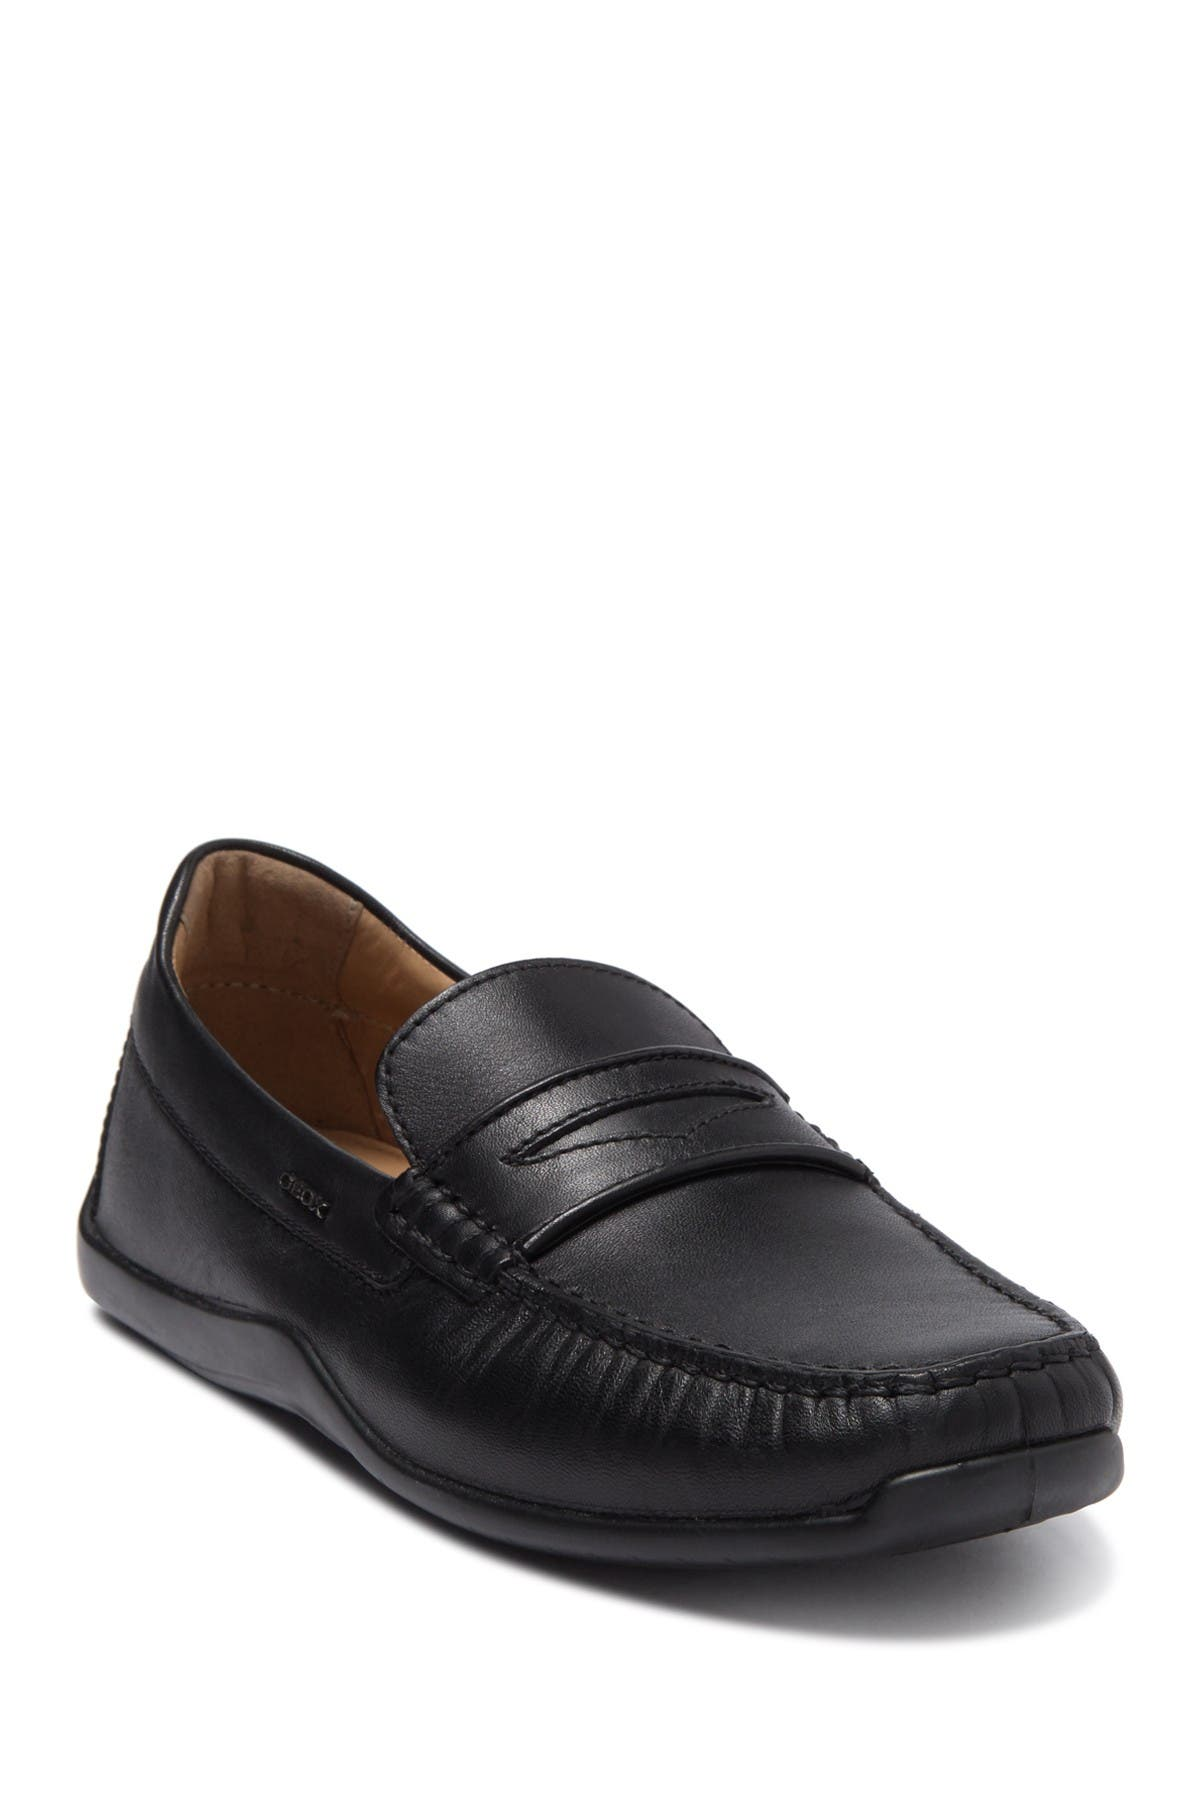 Image of GEOX Xense Penny Loafer